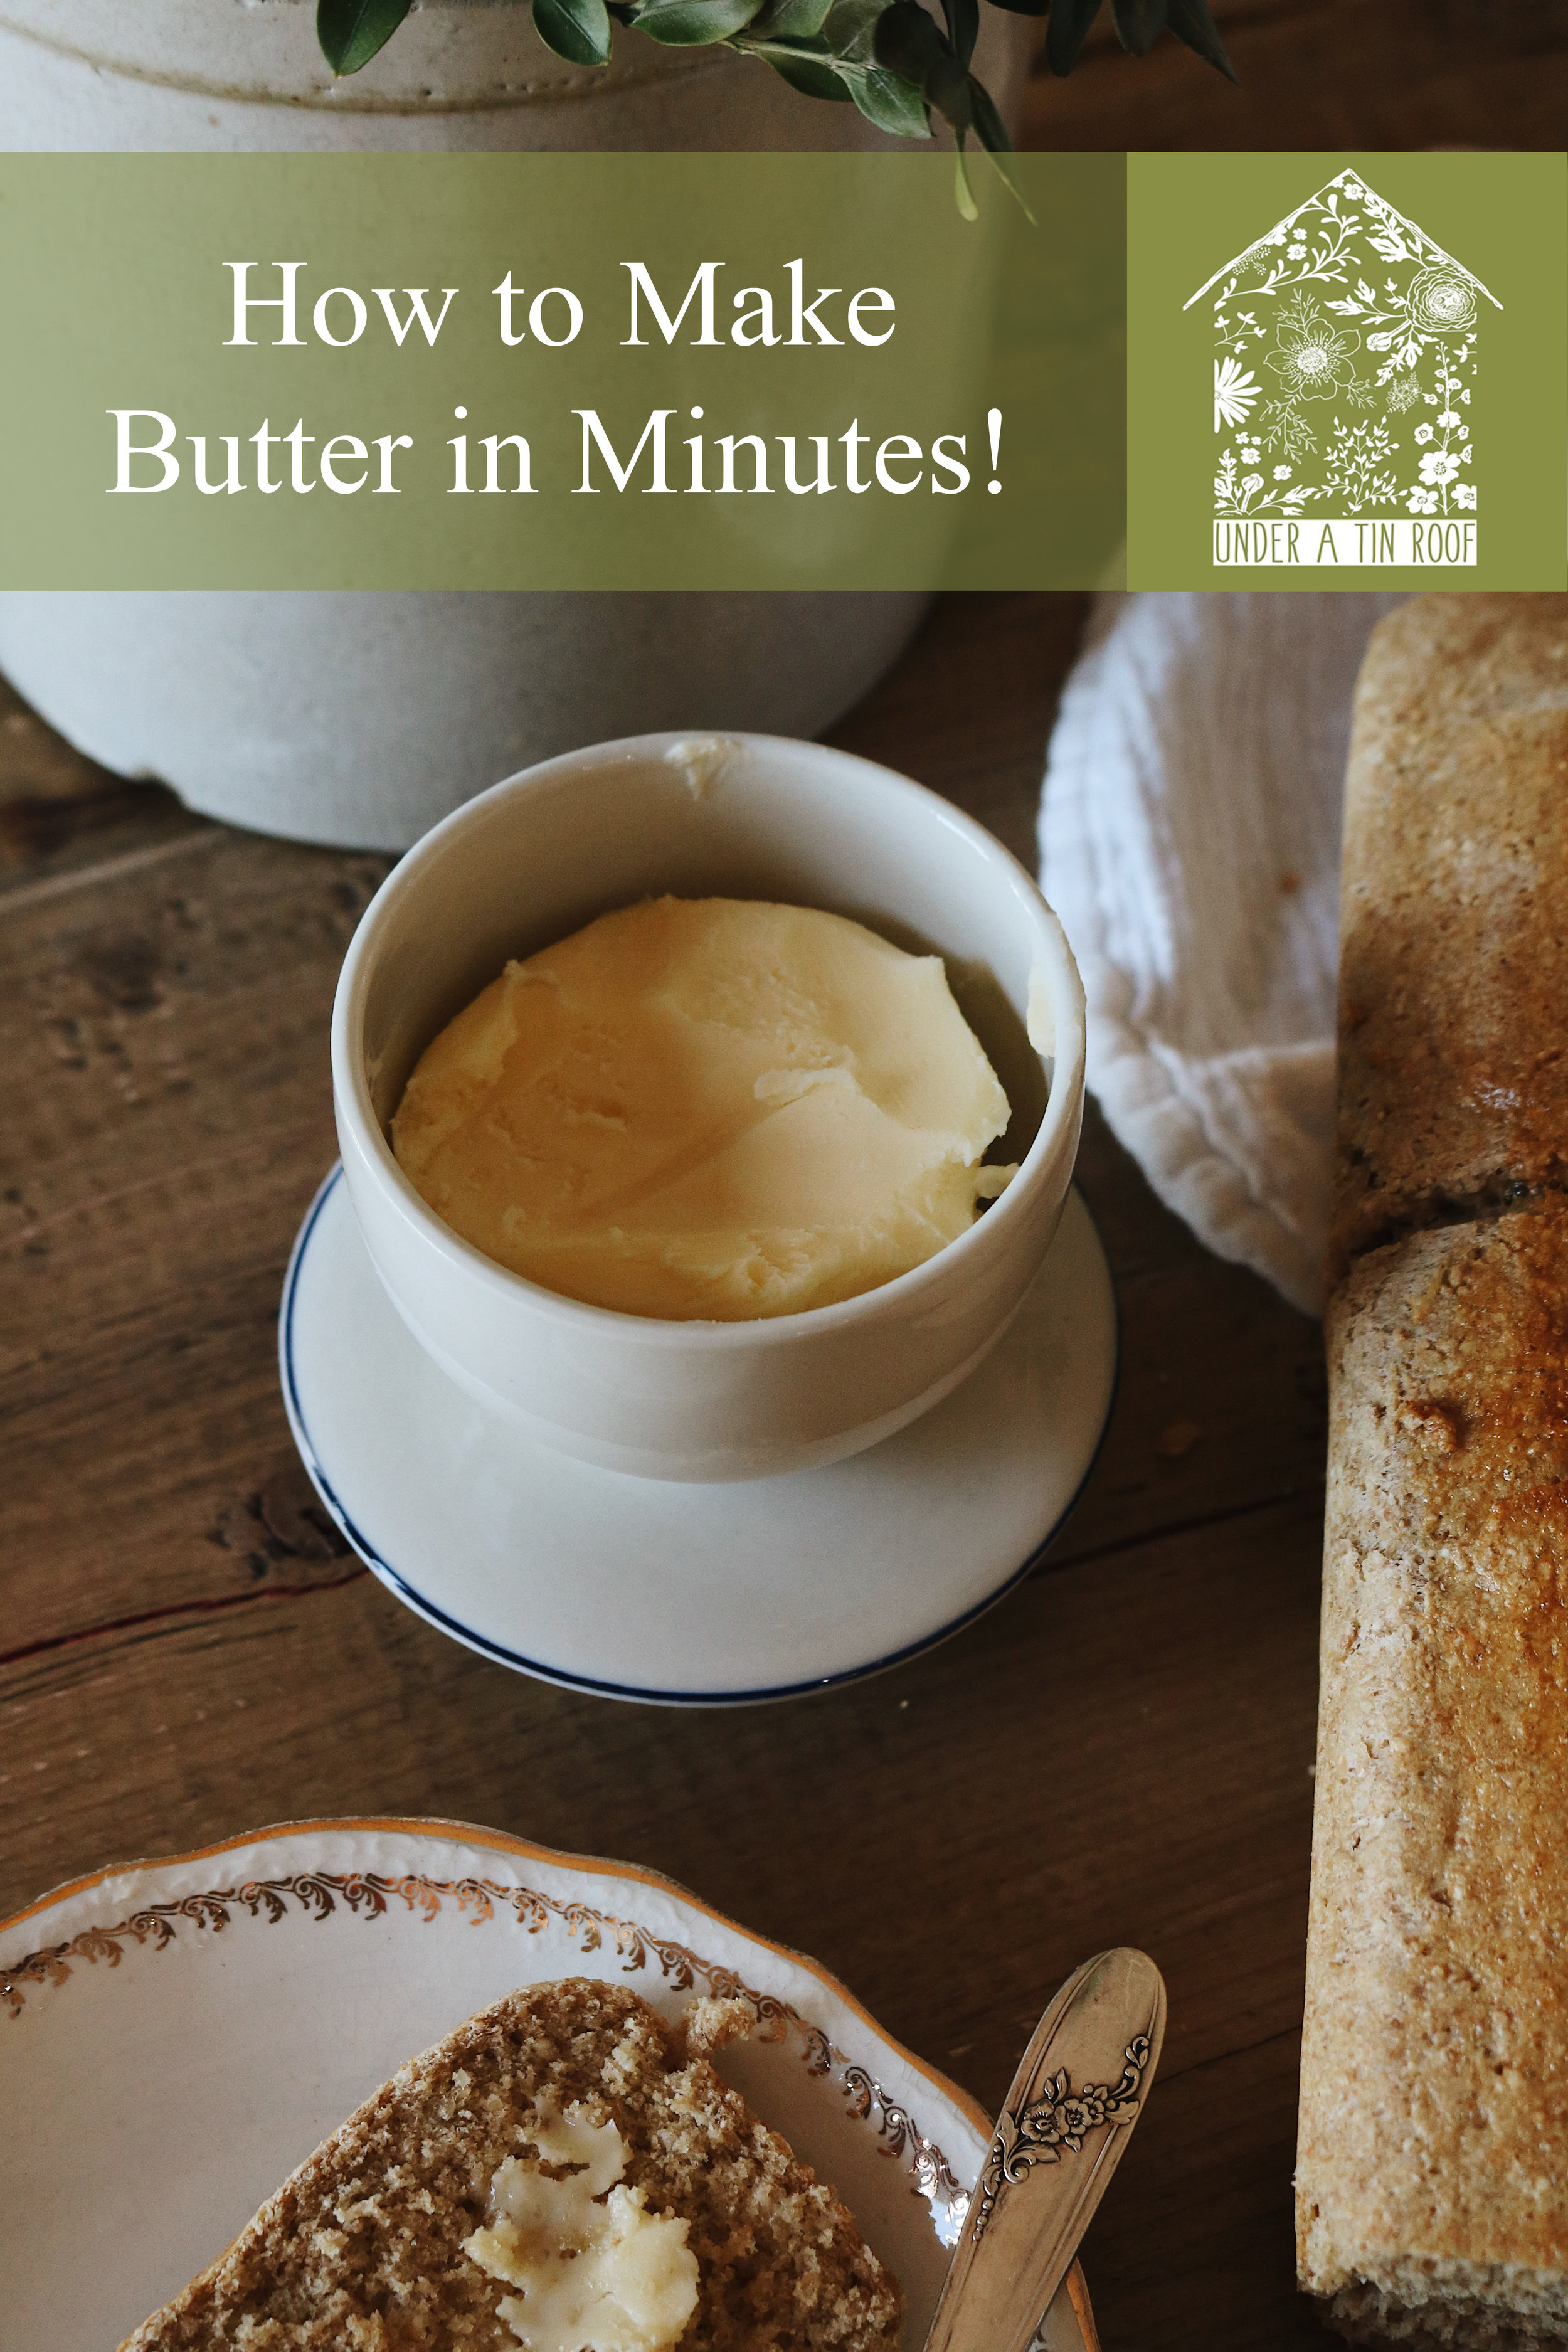 Shaken Not Stirred! My Favorite Way to Make Homemade Butter - Under A Tin Roof Blog